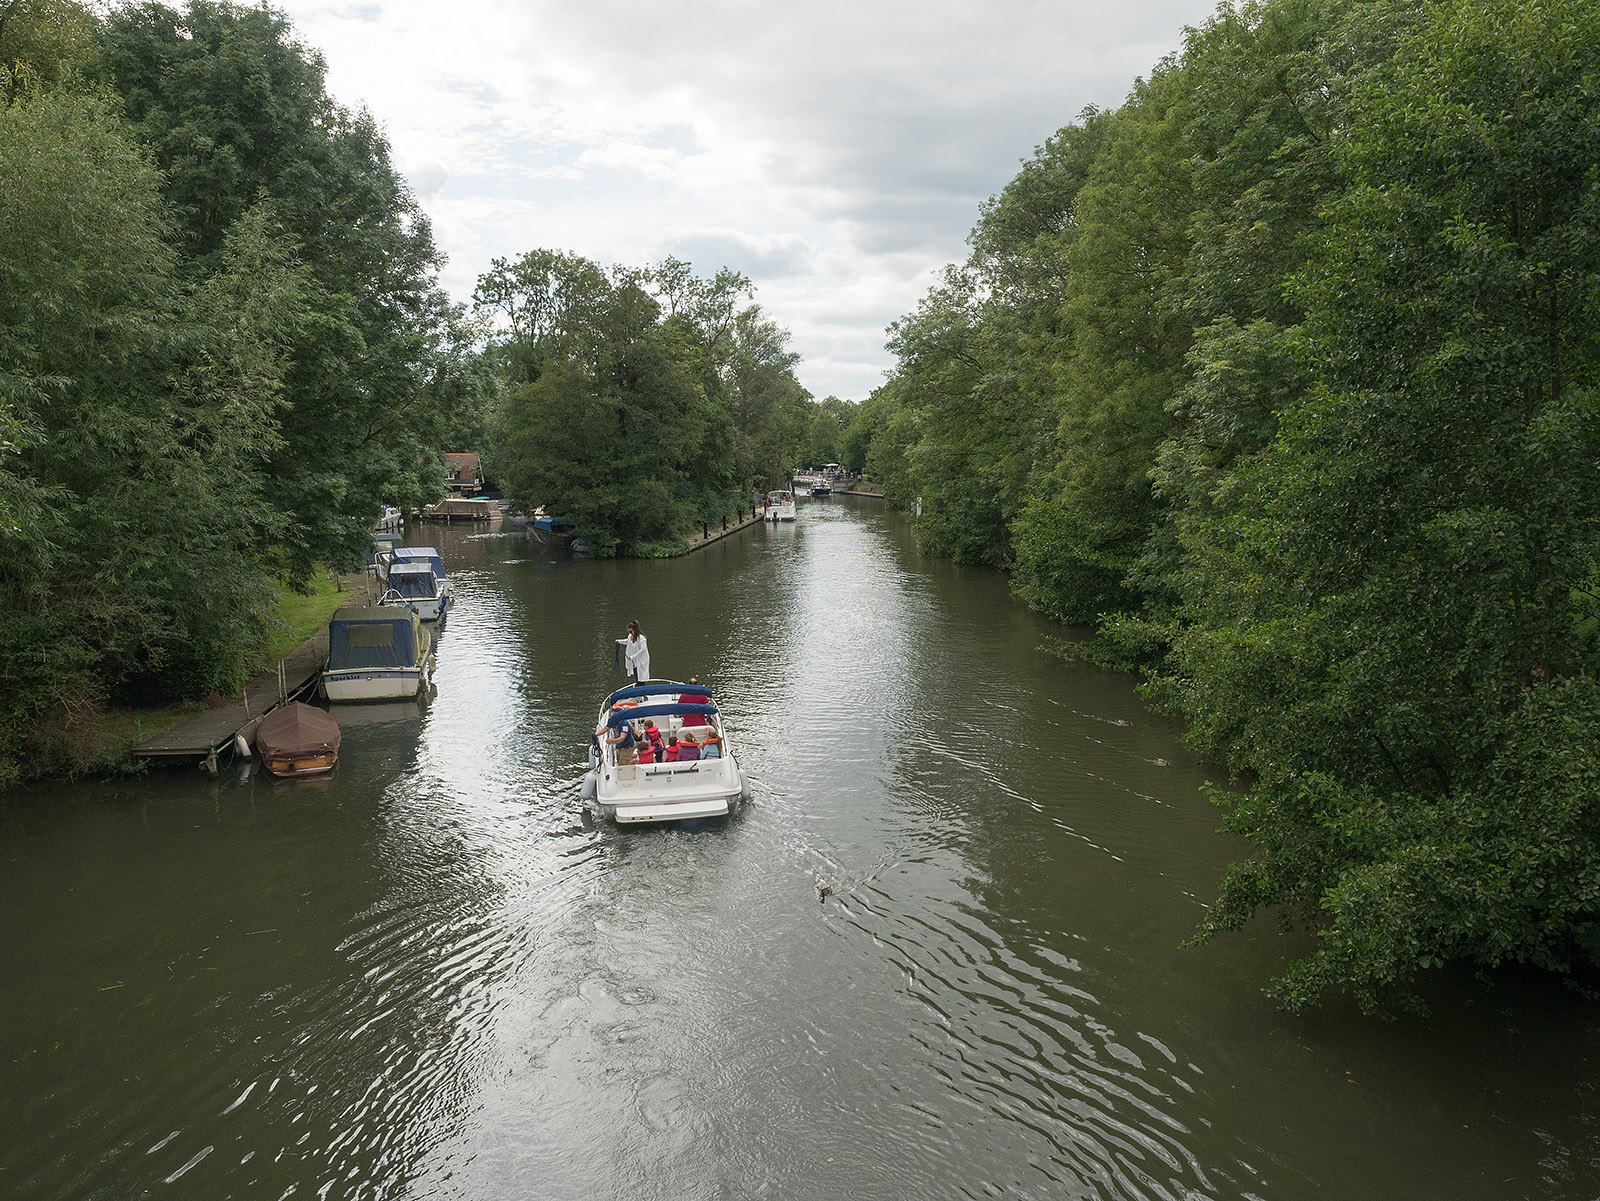 View from bridge to Temple Mill island